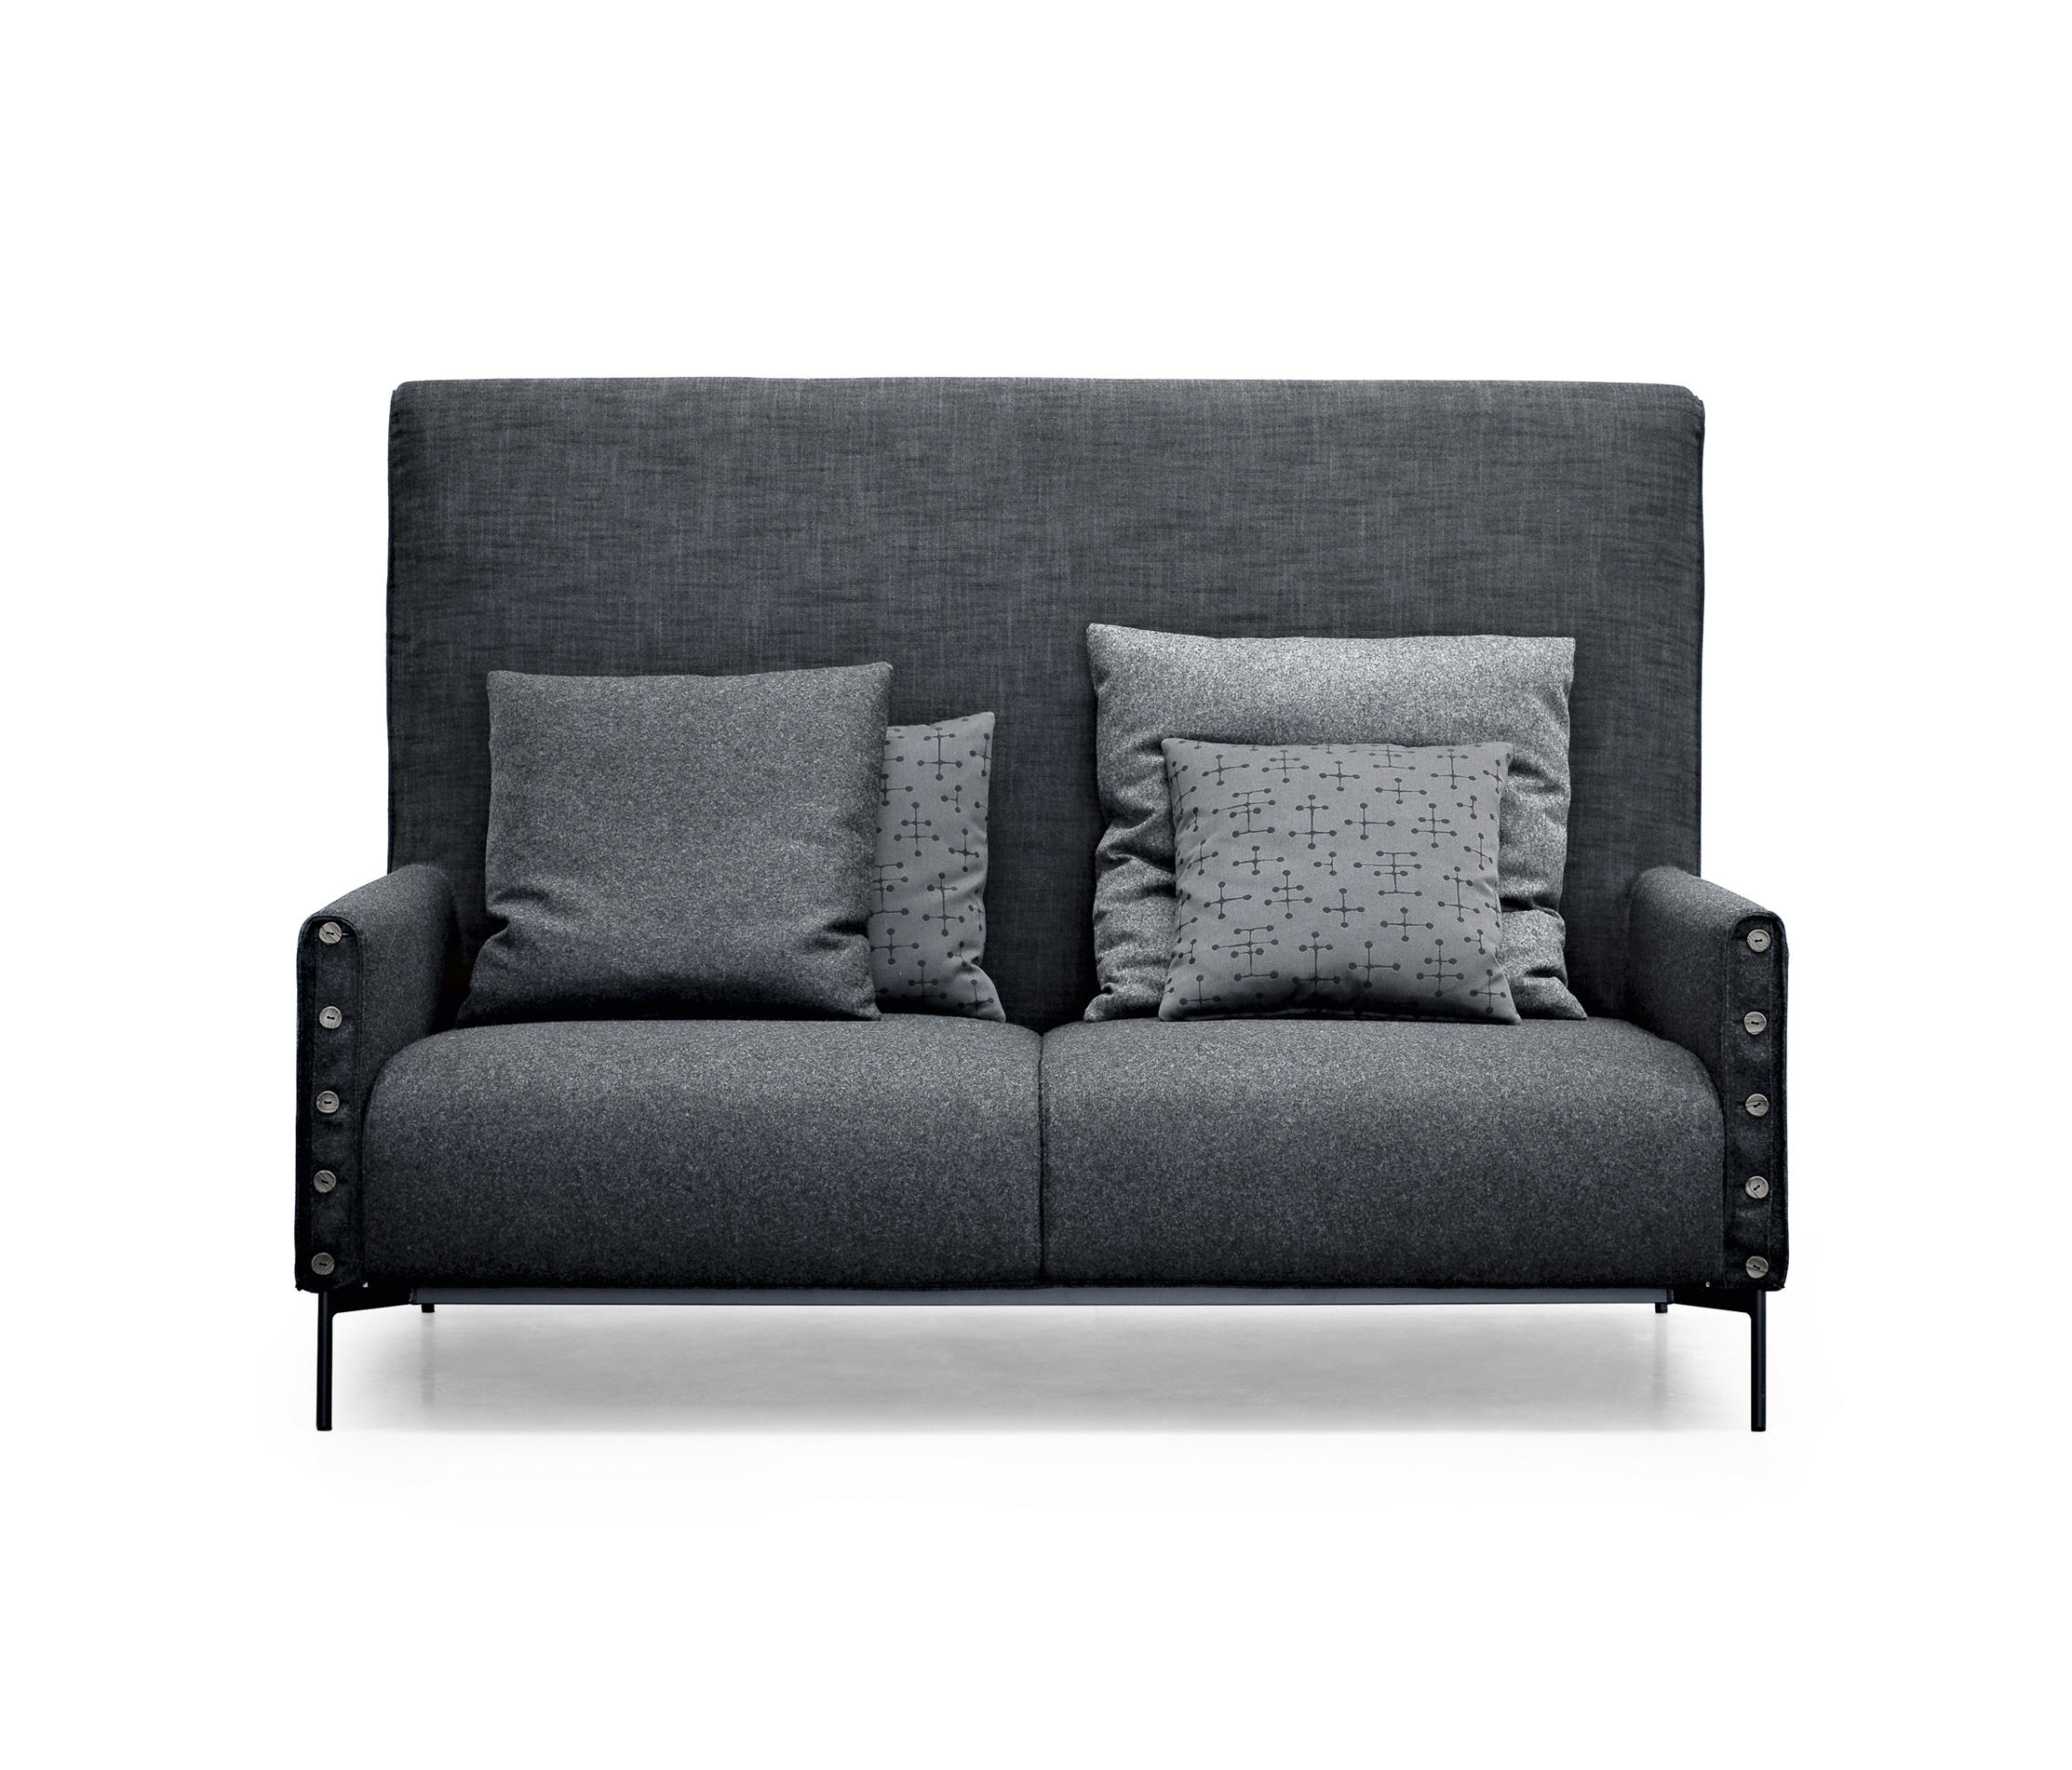 HIGHLIFE Lounge sofas from Tacchini Italia